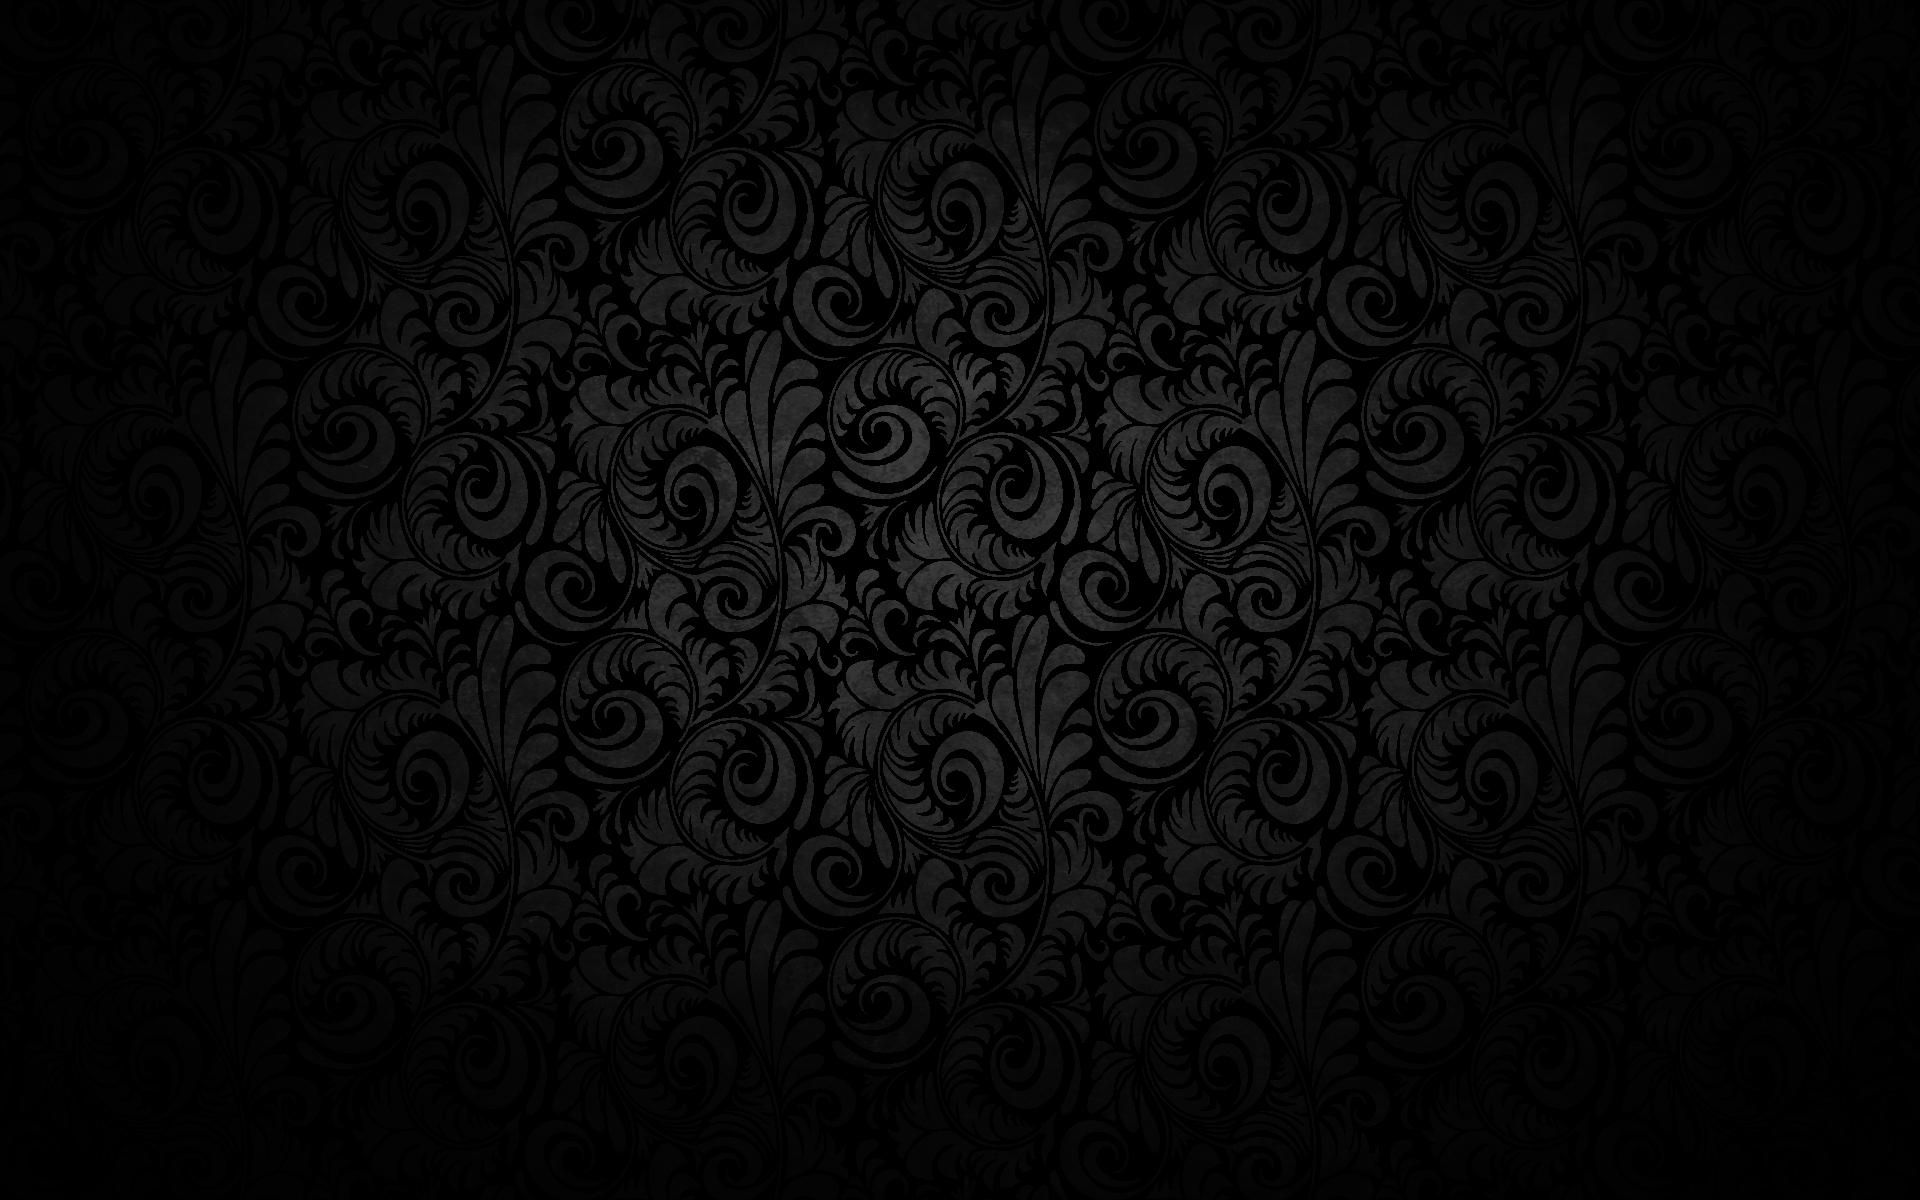 Gothic Wallpapers Android Apps On Google Play 1280x875 Pictures 56